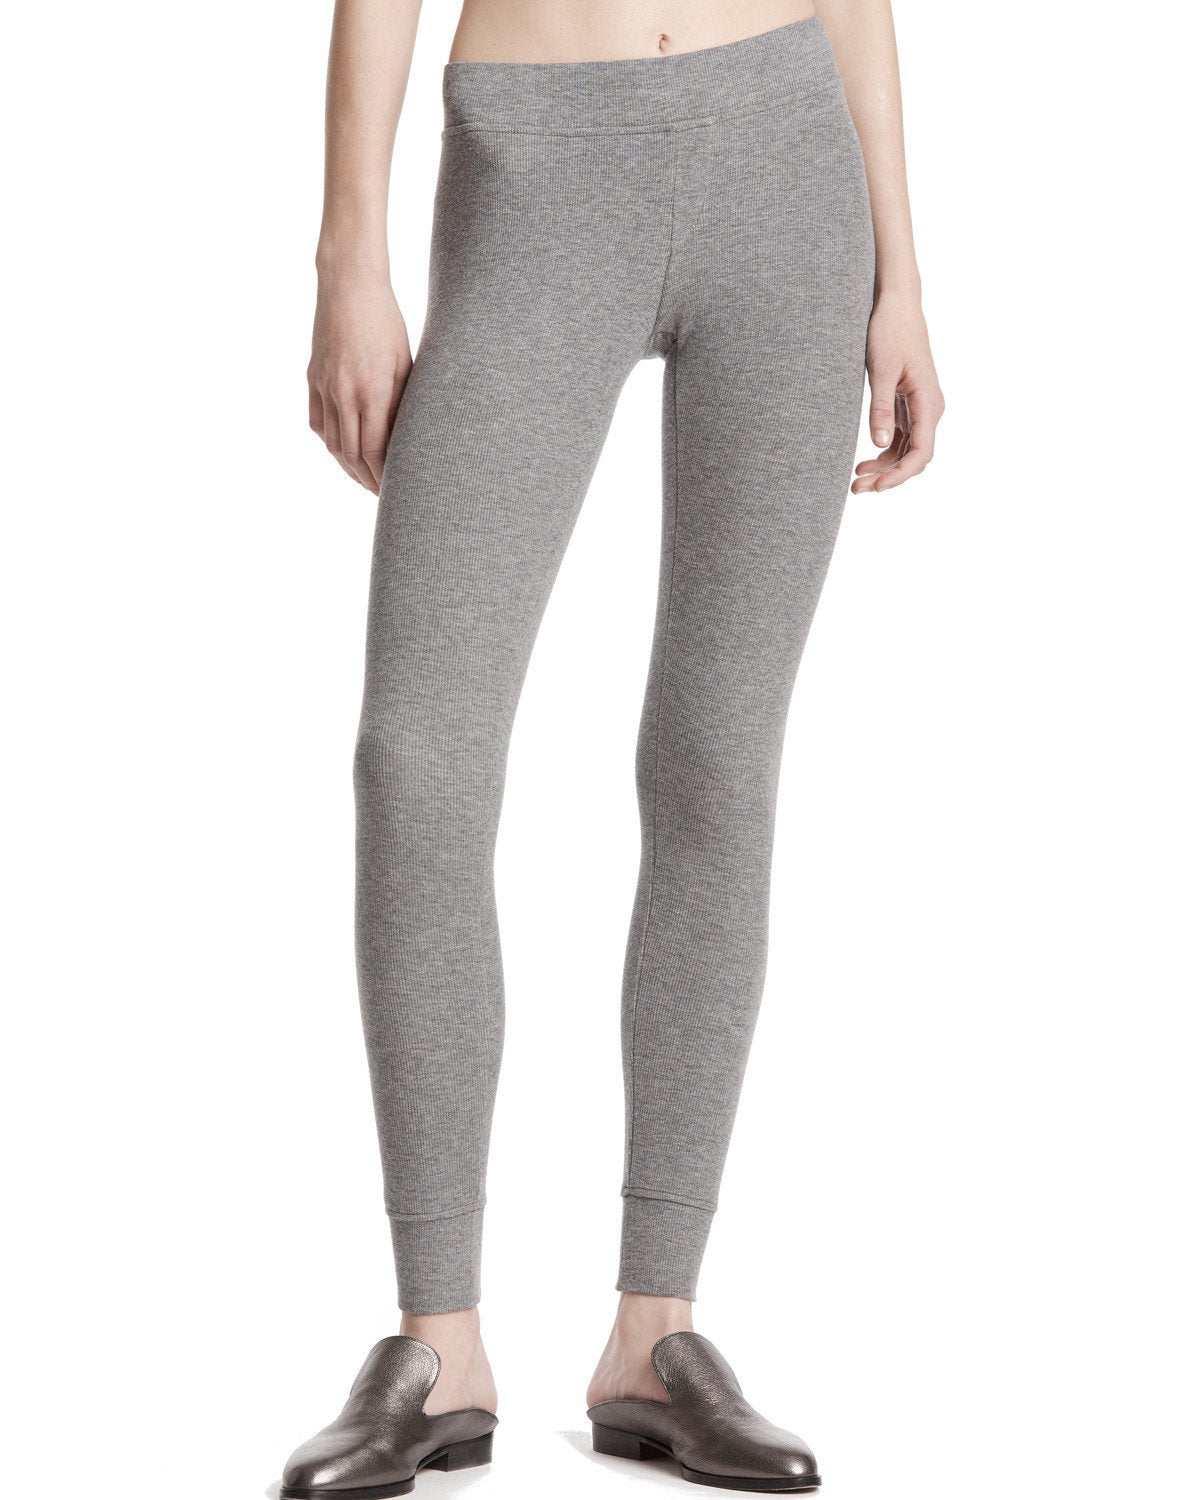 ATM Full Length Yoga Rib Legging